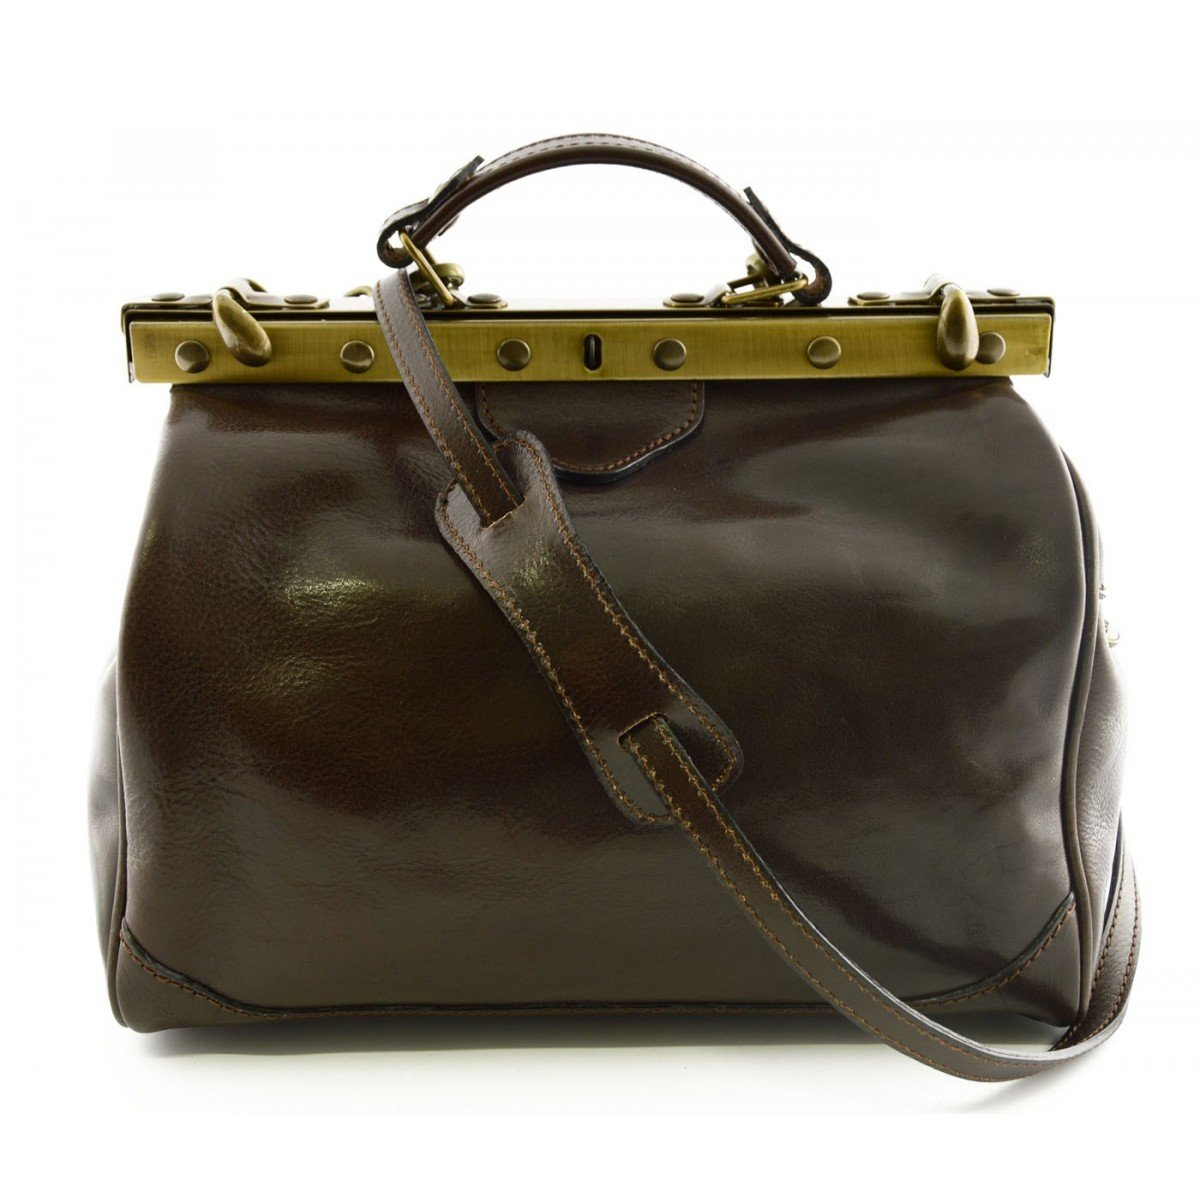 Made In Italy Genuine Leather Bag For Doctor Color Dark Brown - Business Bag   B015S9X6ZS